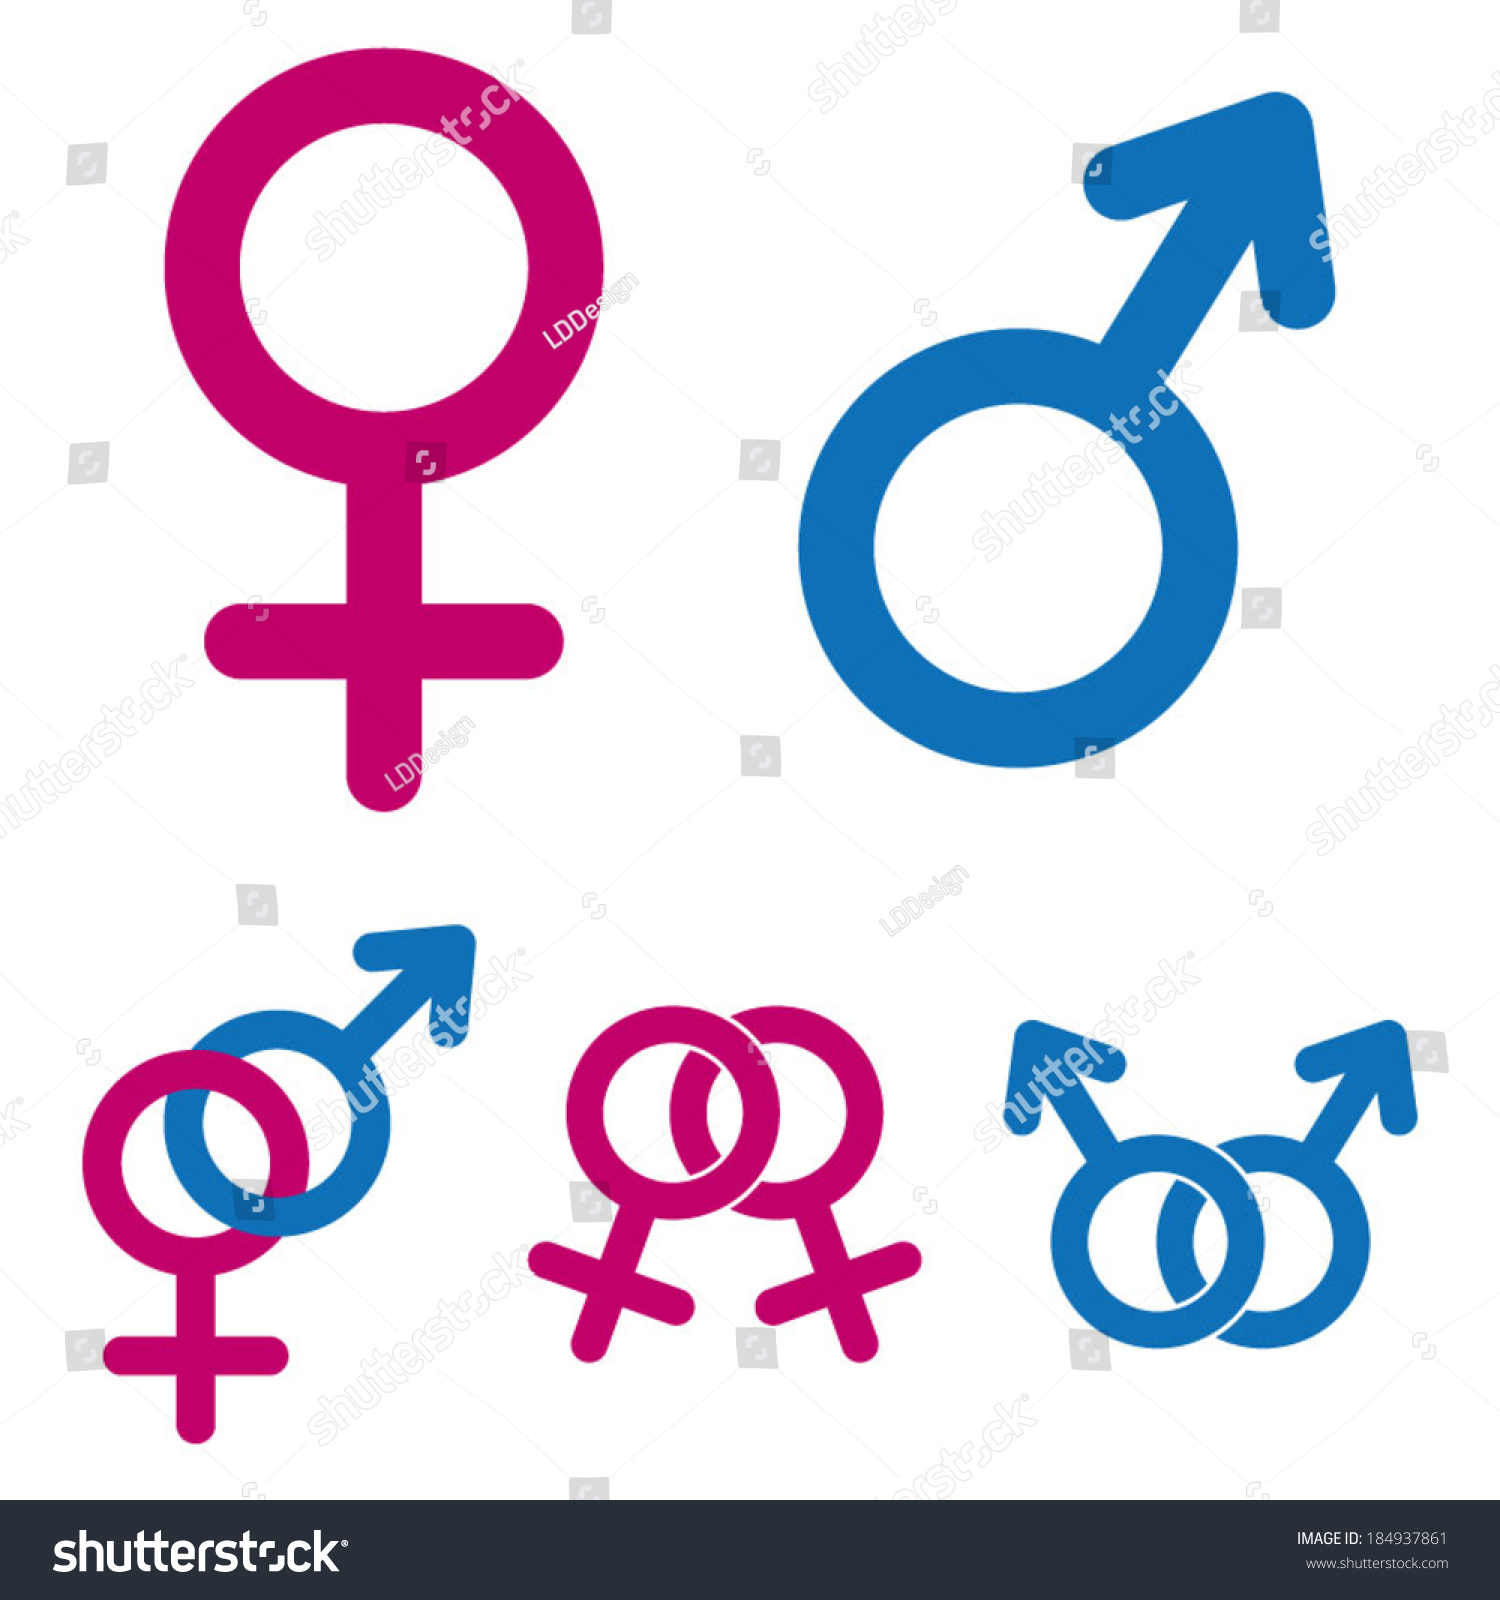 Male Female Symbols Stock Vector Hd Royalty Free 184937861